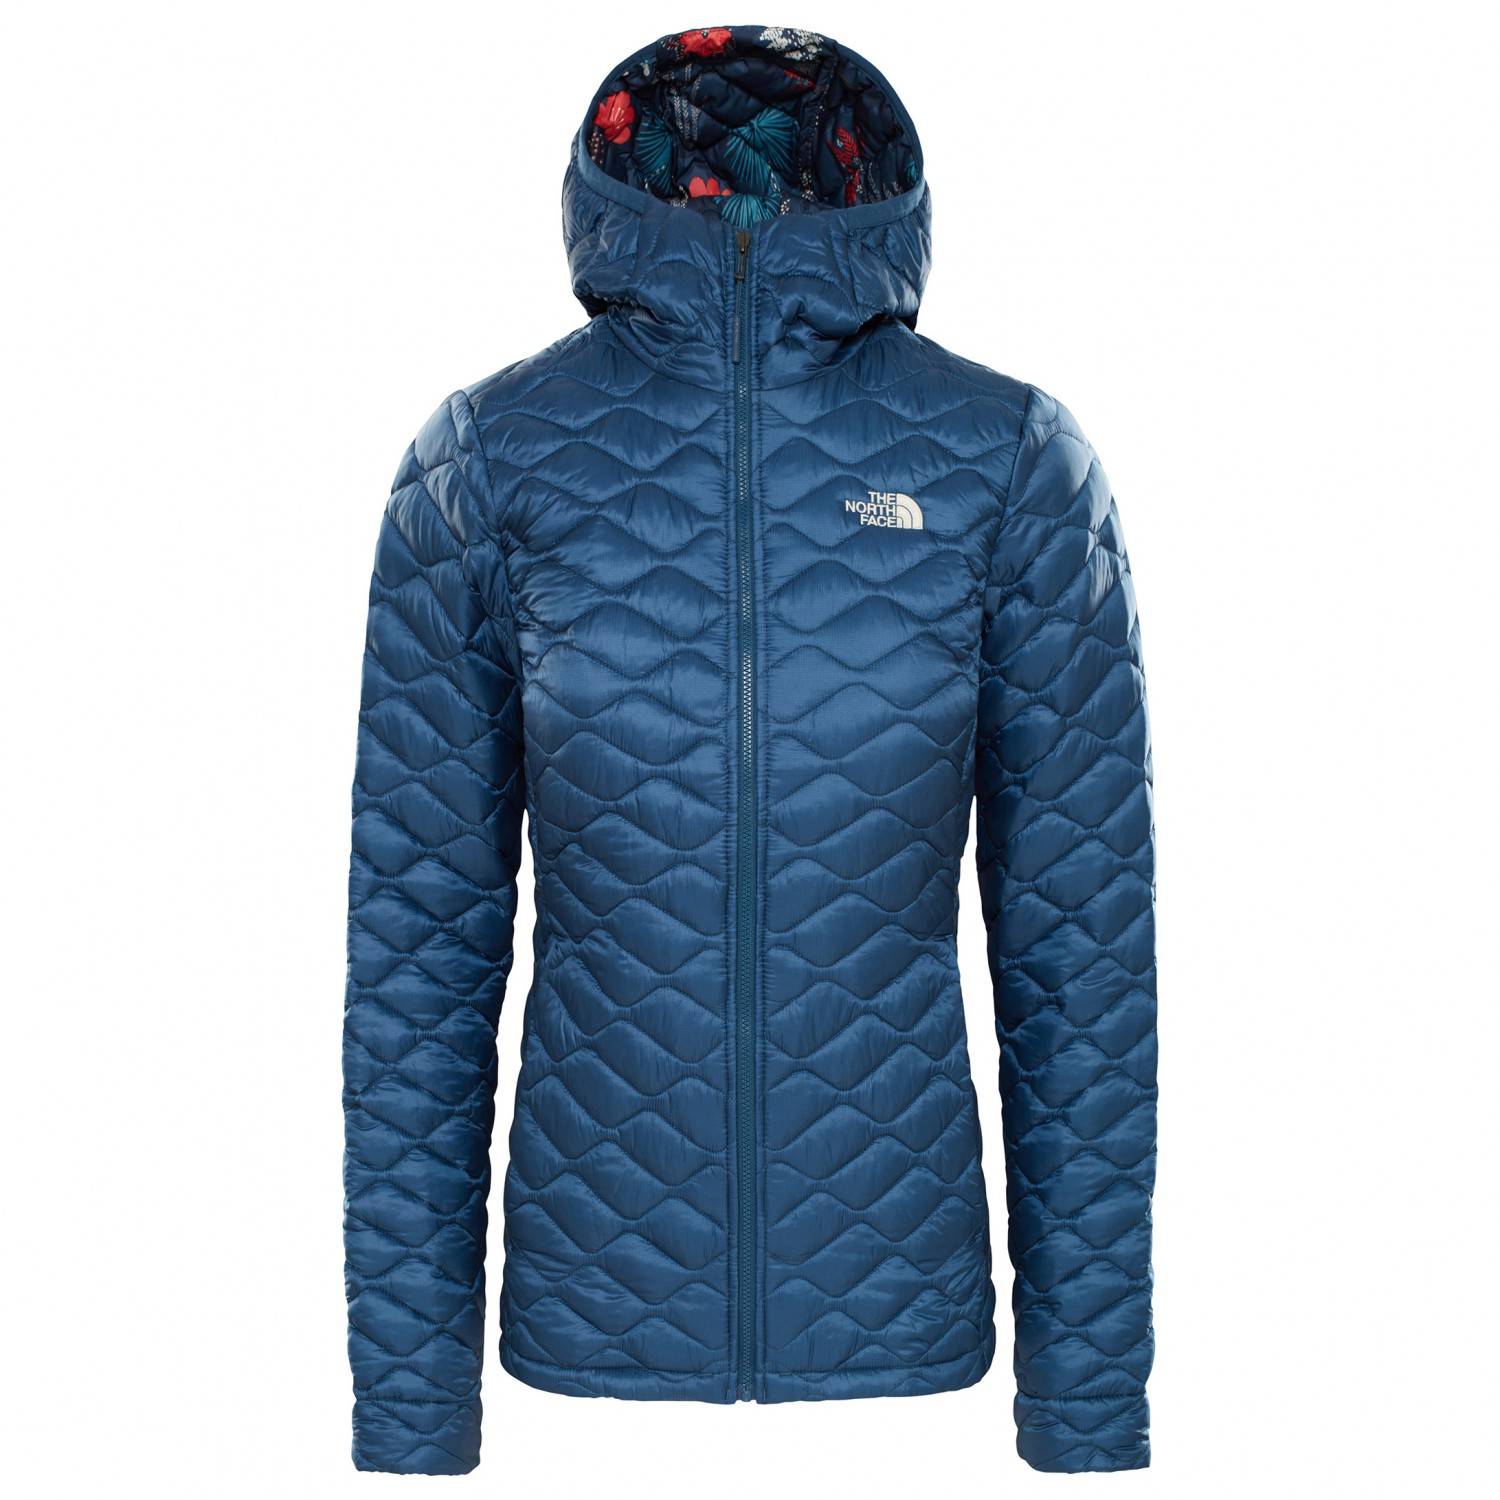 The North Face Women's Thermoball Hoodie Veste synthétique